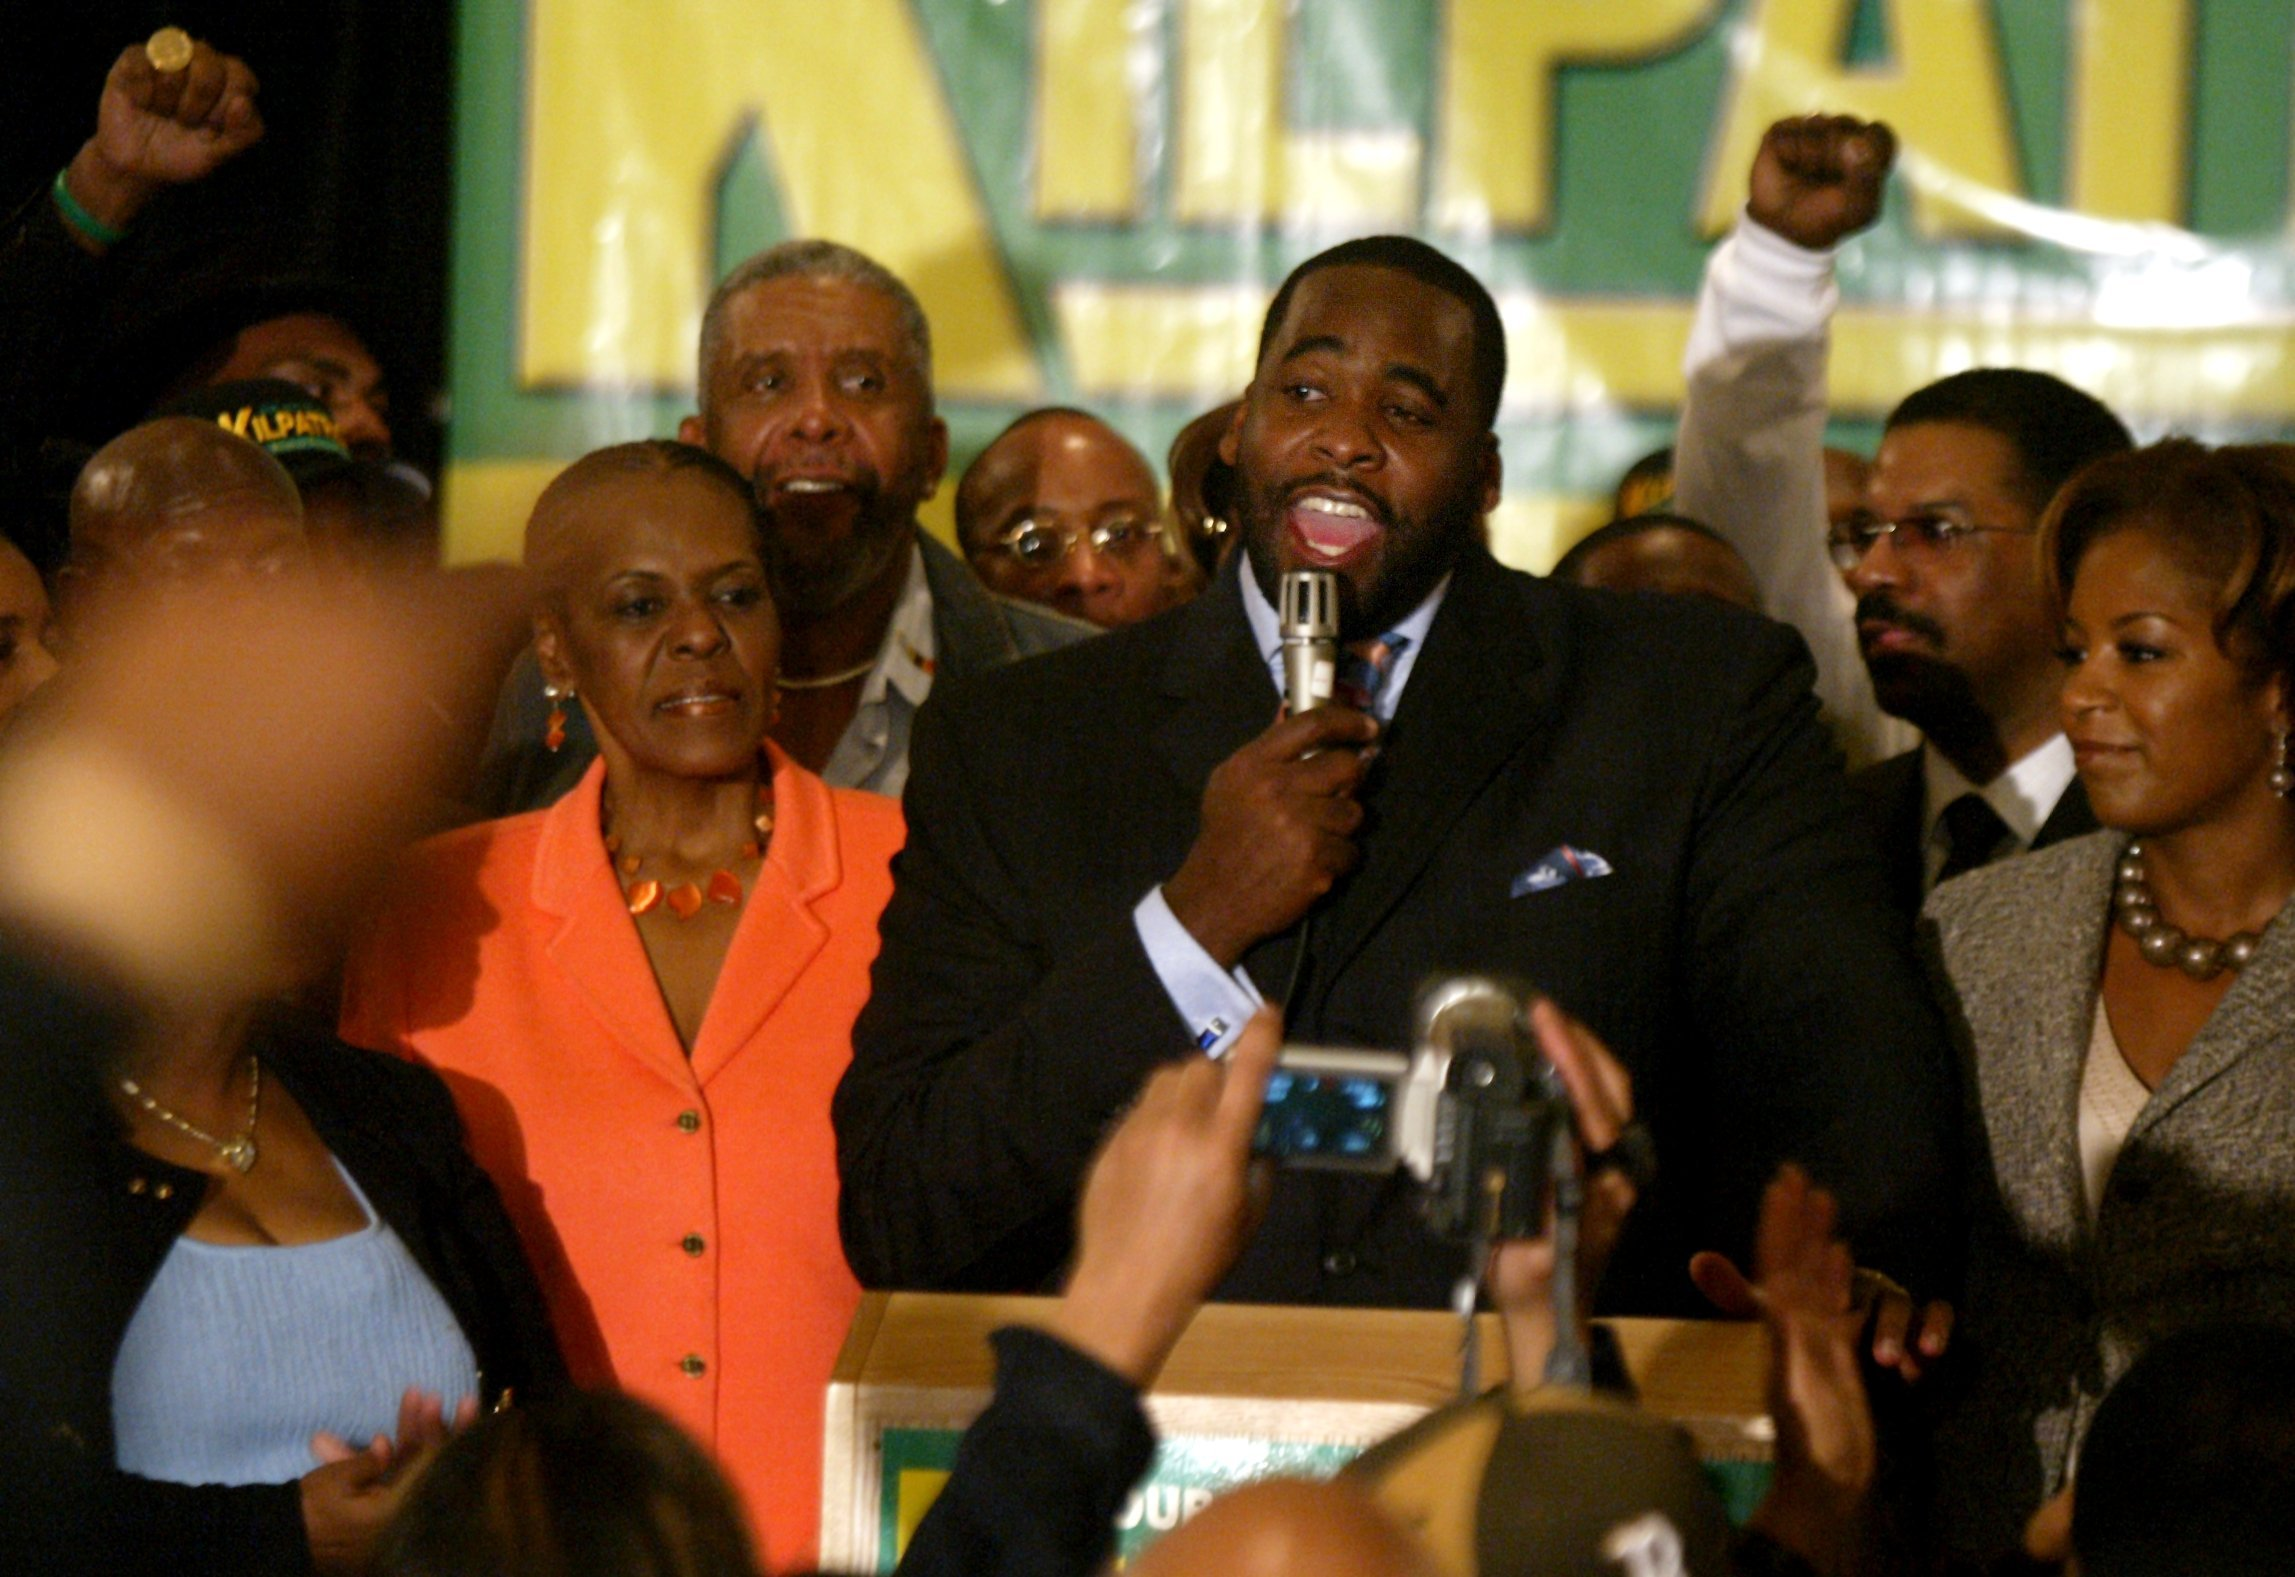 Kwame Kilpatrick gives a speech to supporters at the Detroit Marriott Renaissance Center after polling closed on election day in 2005. He came from behind to secure an upset win over challenger Freman Hendrix.  Courtesy of the Detroit Free Press.